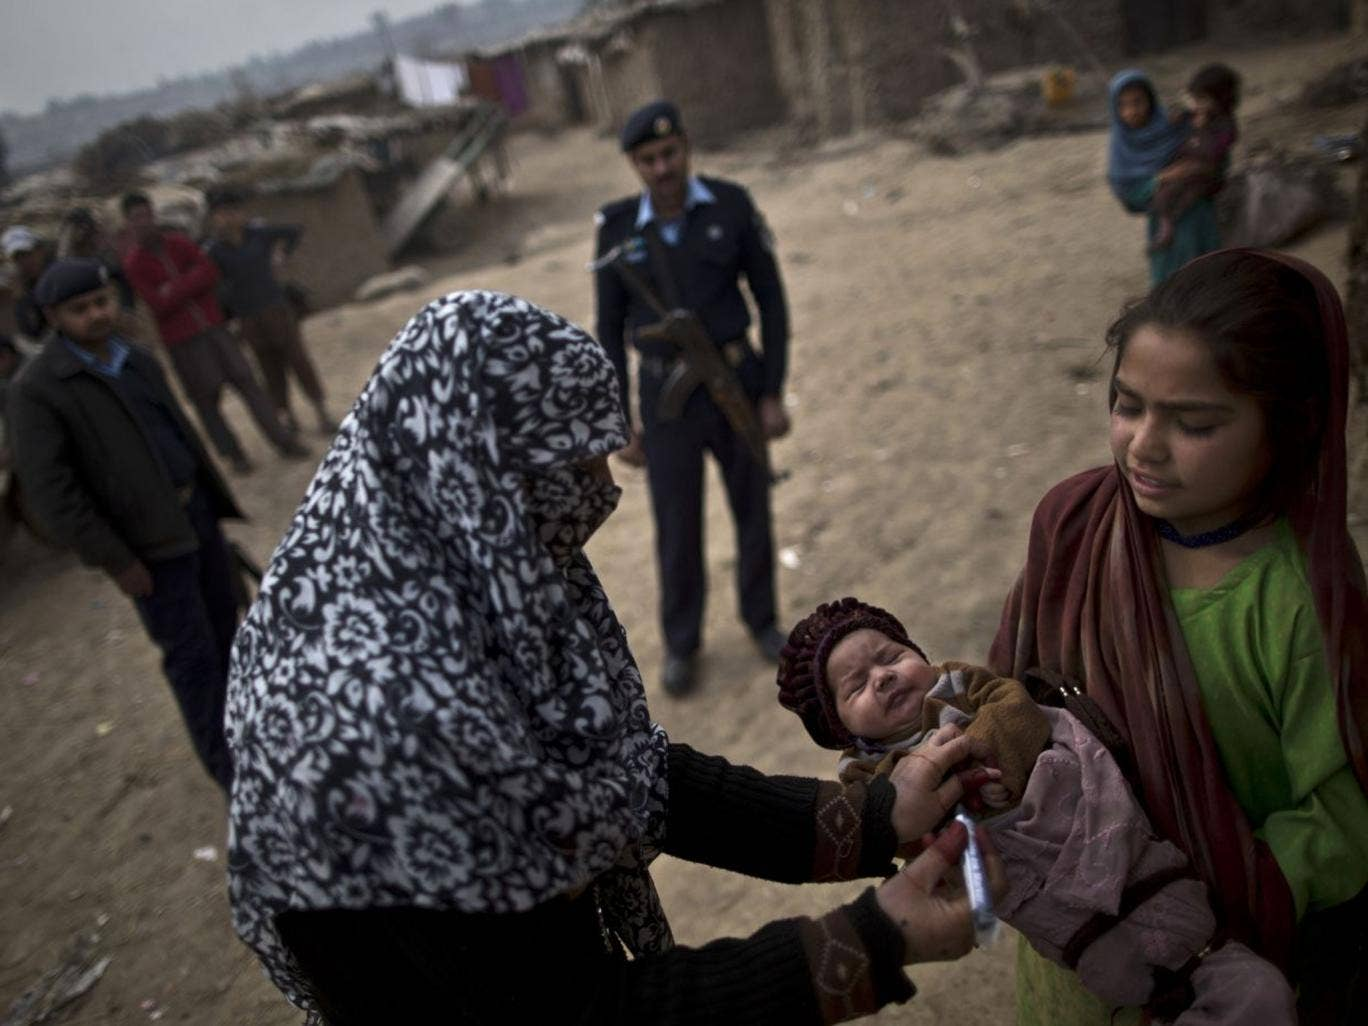 A Pakistani health worker marks the finger of an Afghan refugee child held by her elder sister, after giving her a polio vaccine, on the outskirts of Islamabad, Pakistan, on 26 February 2014